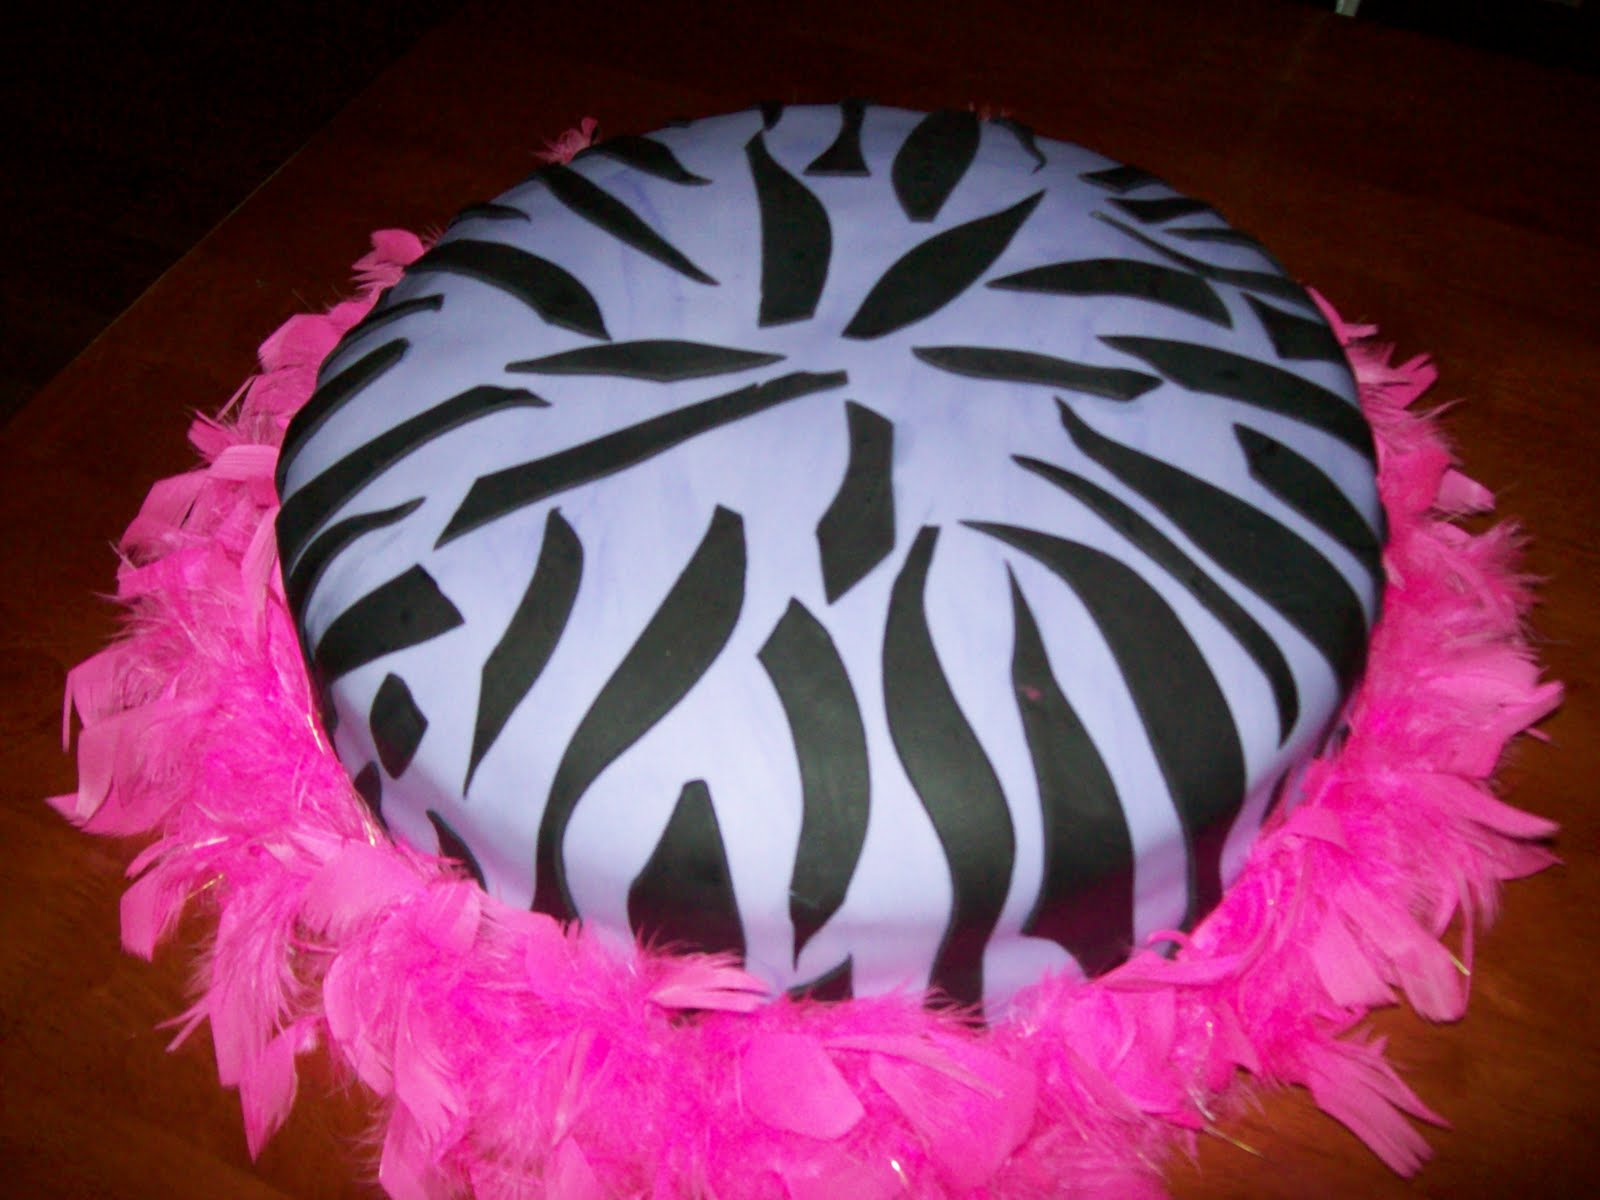 Purple Zebra Cake Design : Cakes By Design: Purple Zebra